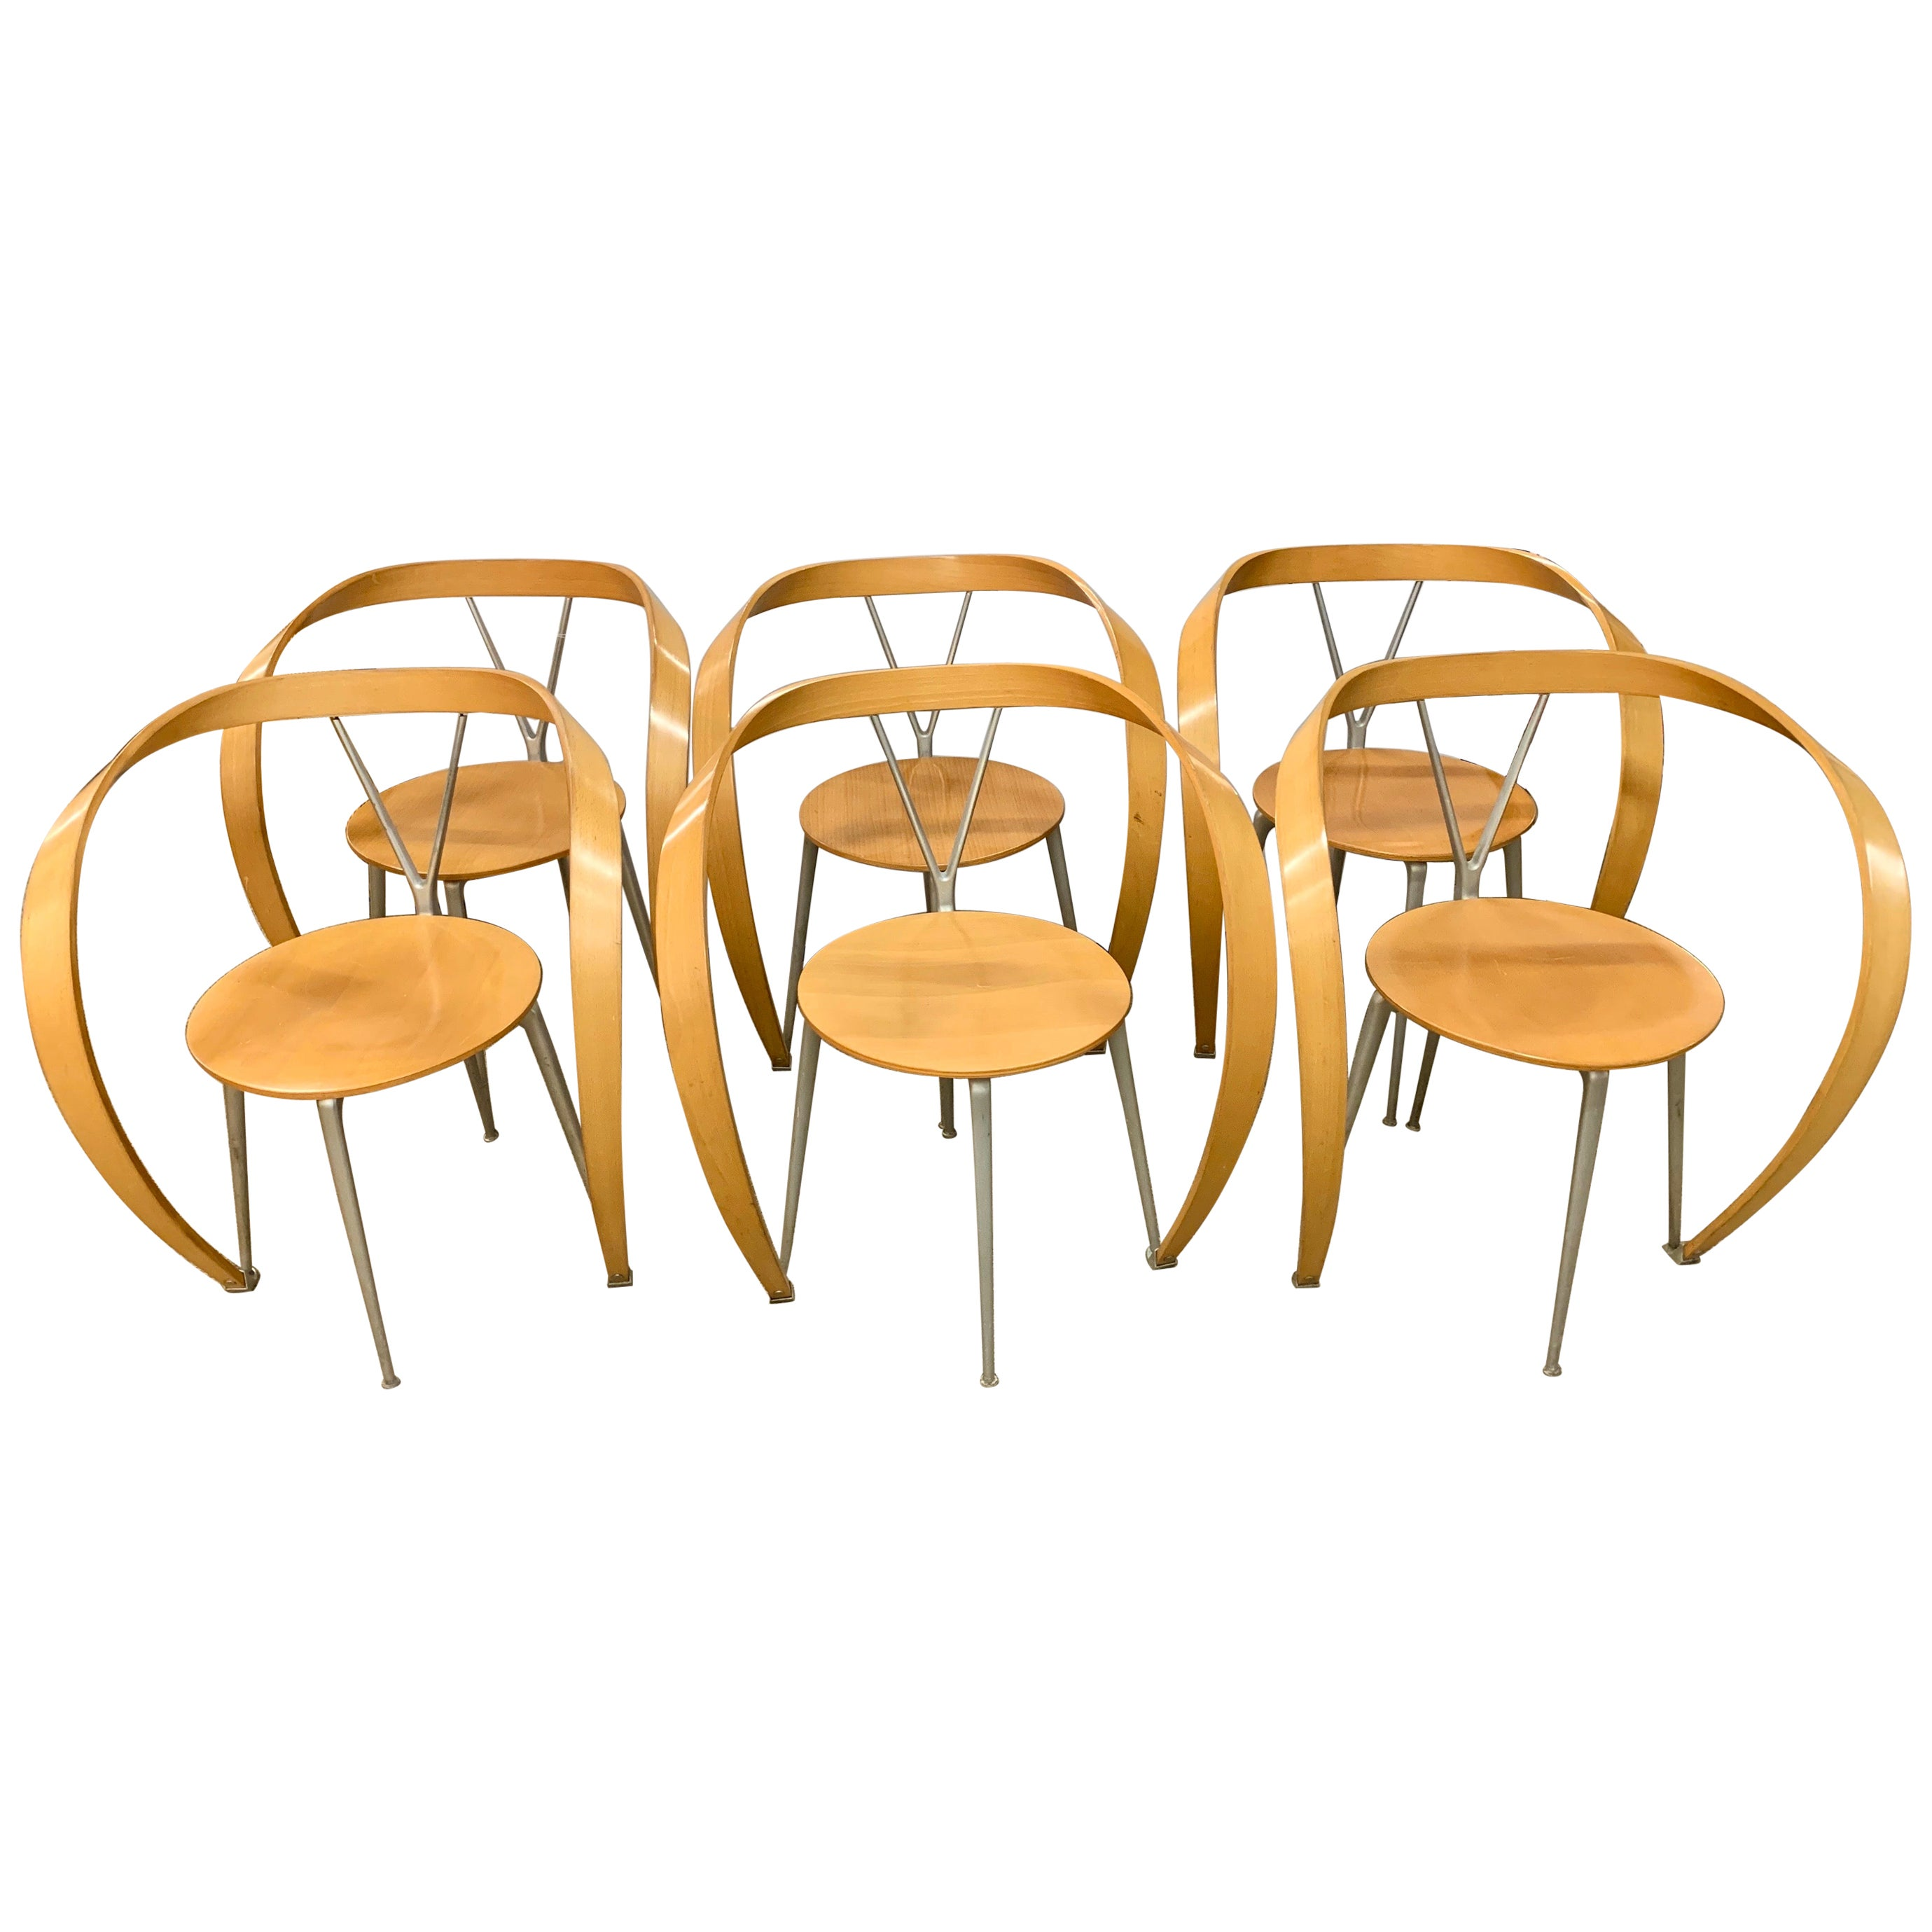 Cassina Set of Six Revers Chairs by Andrea Branzi Italy 1990s